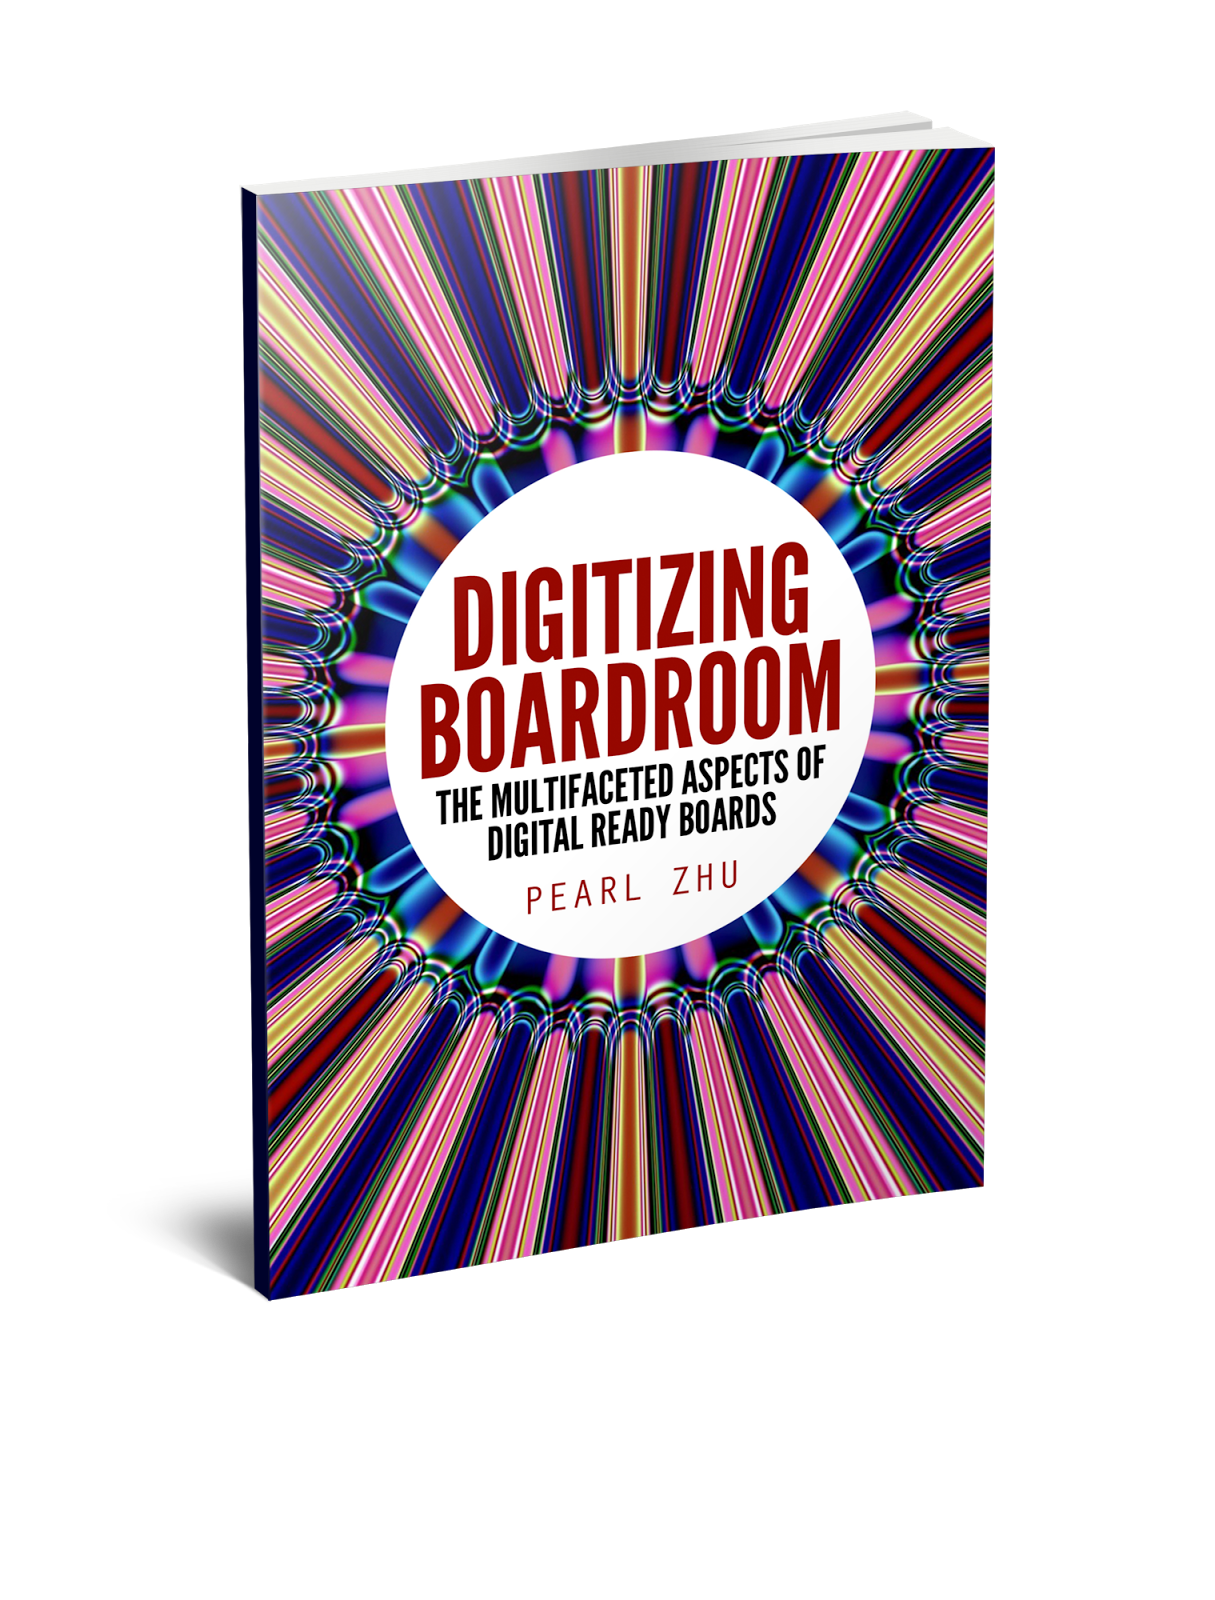 Digitizing Boardroom